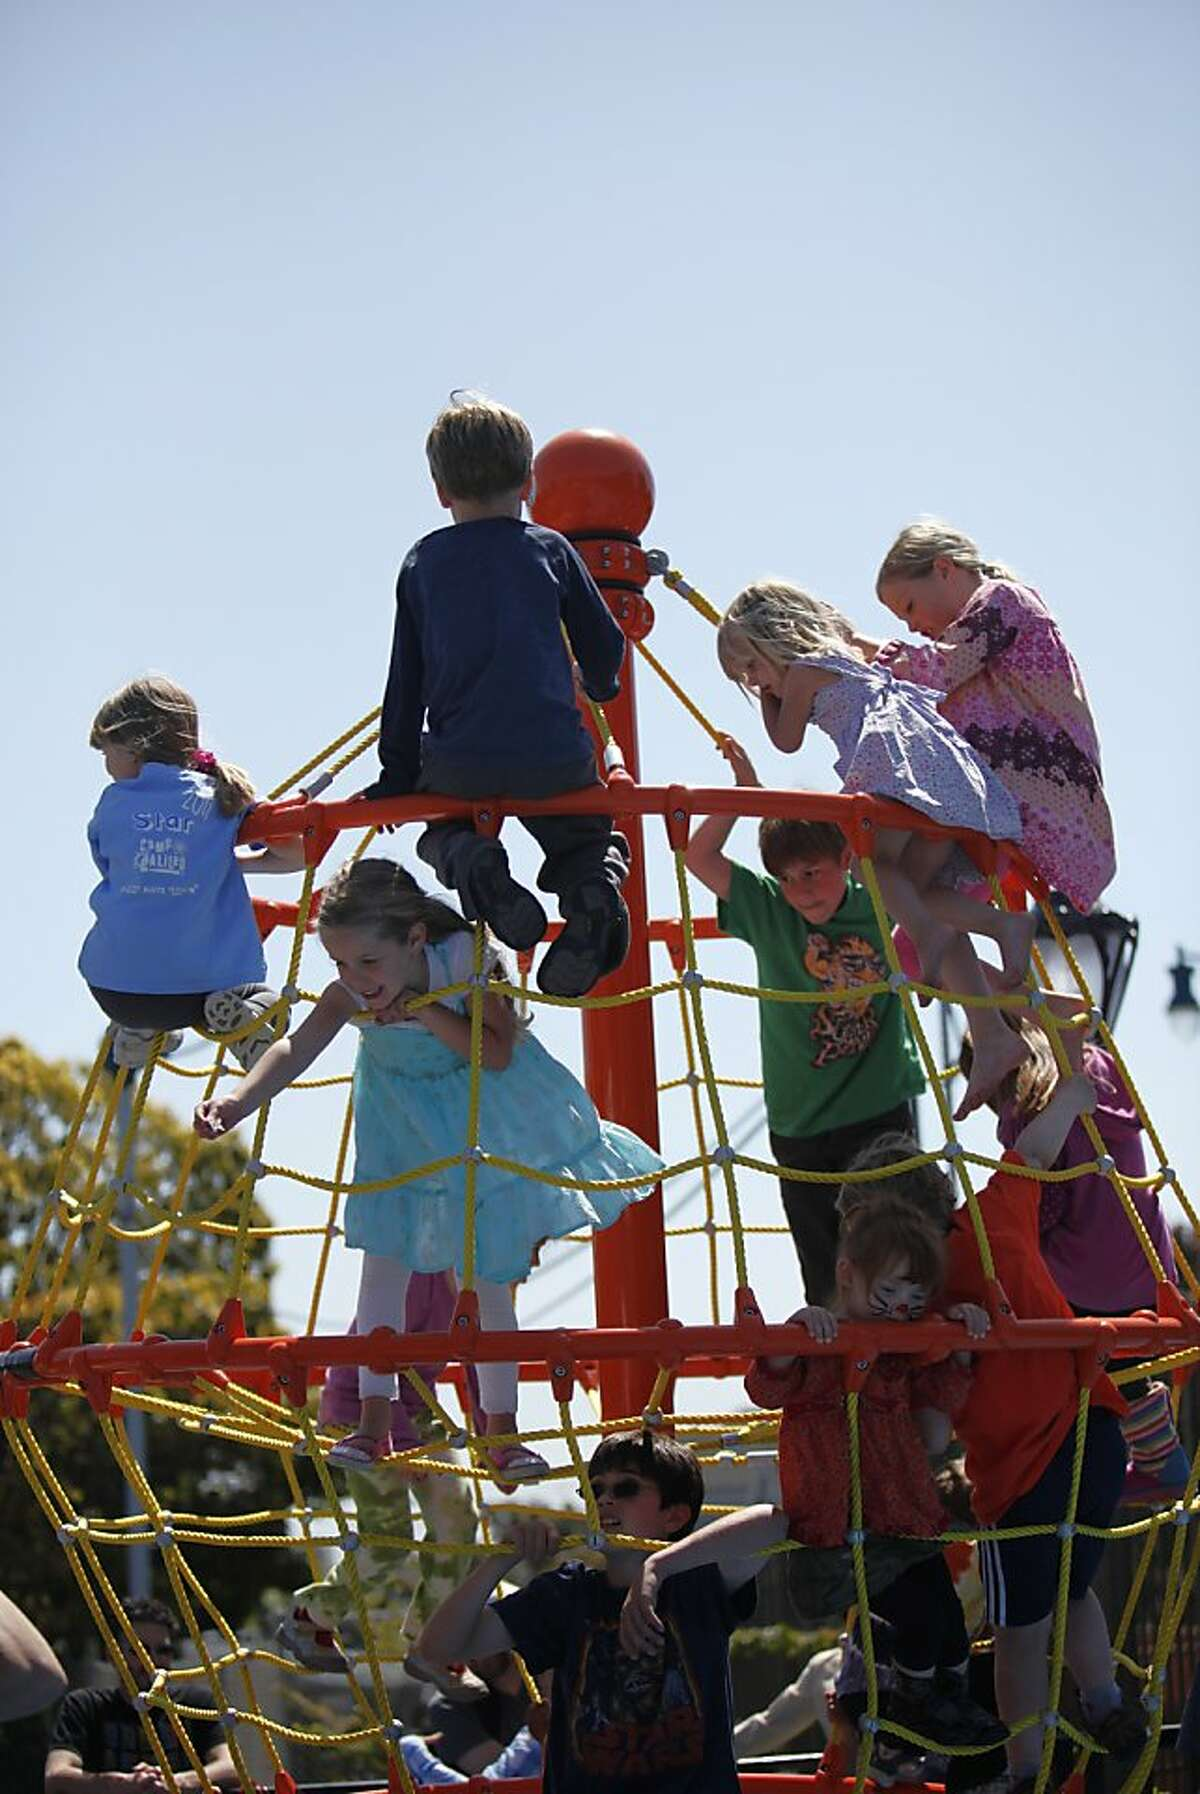 Children play on the new playground structure during